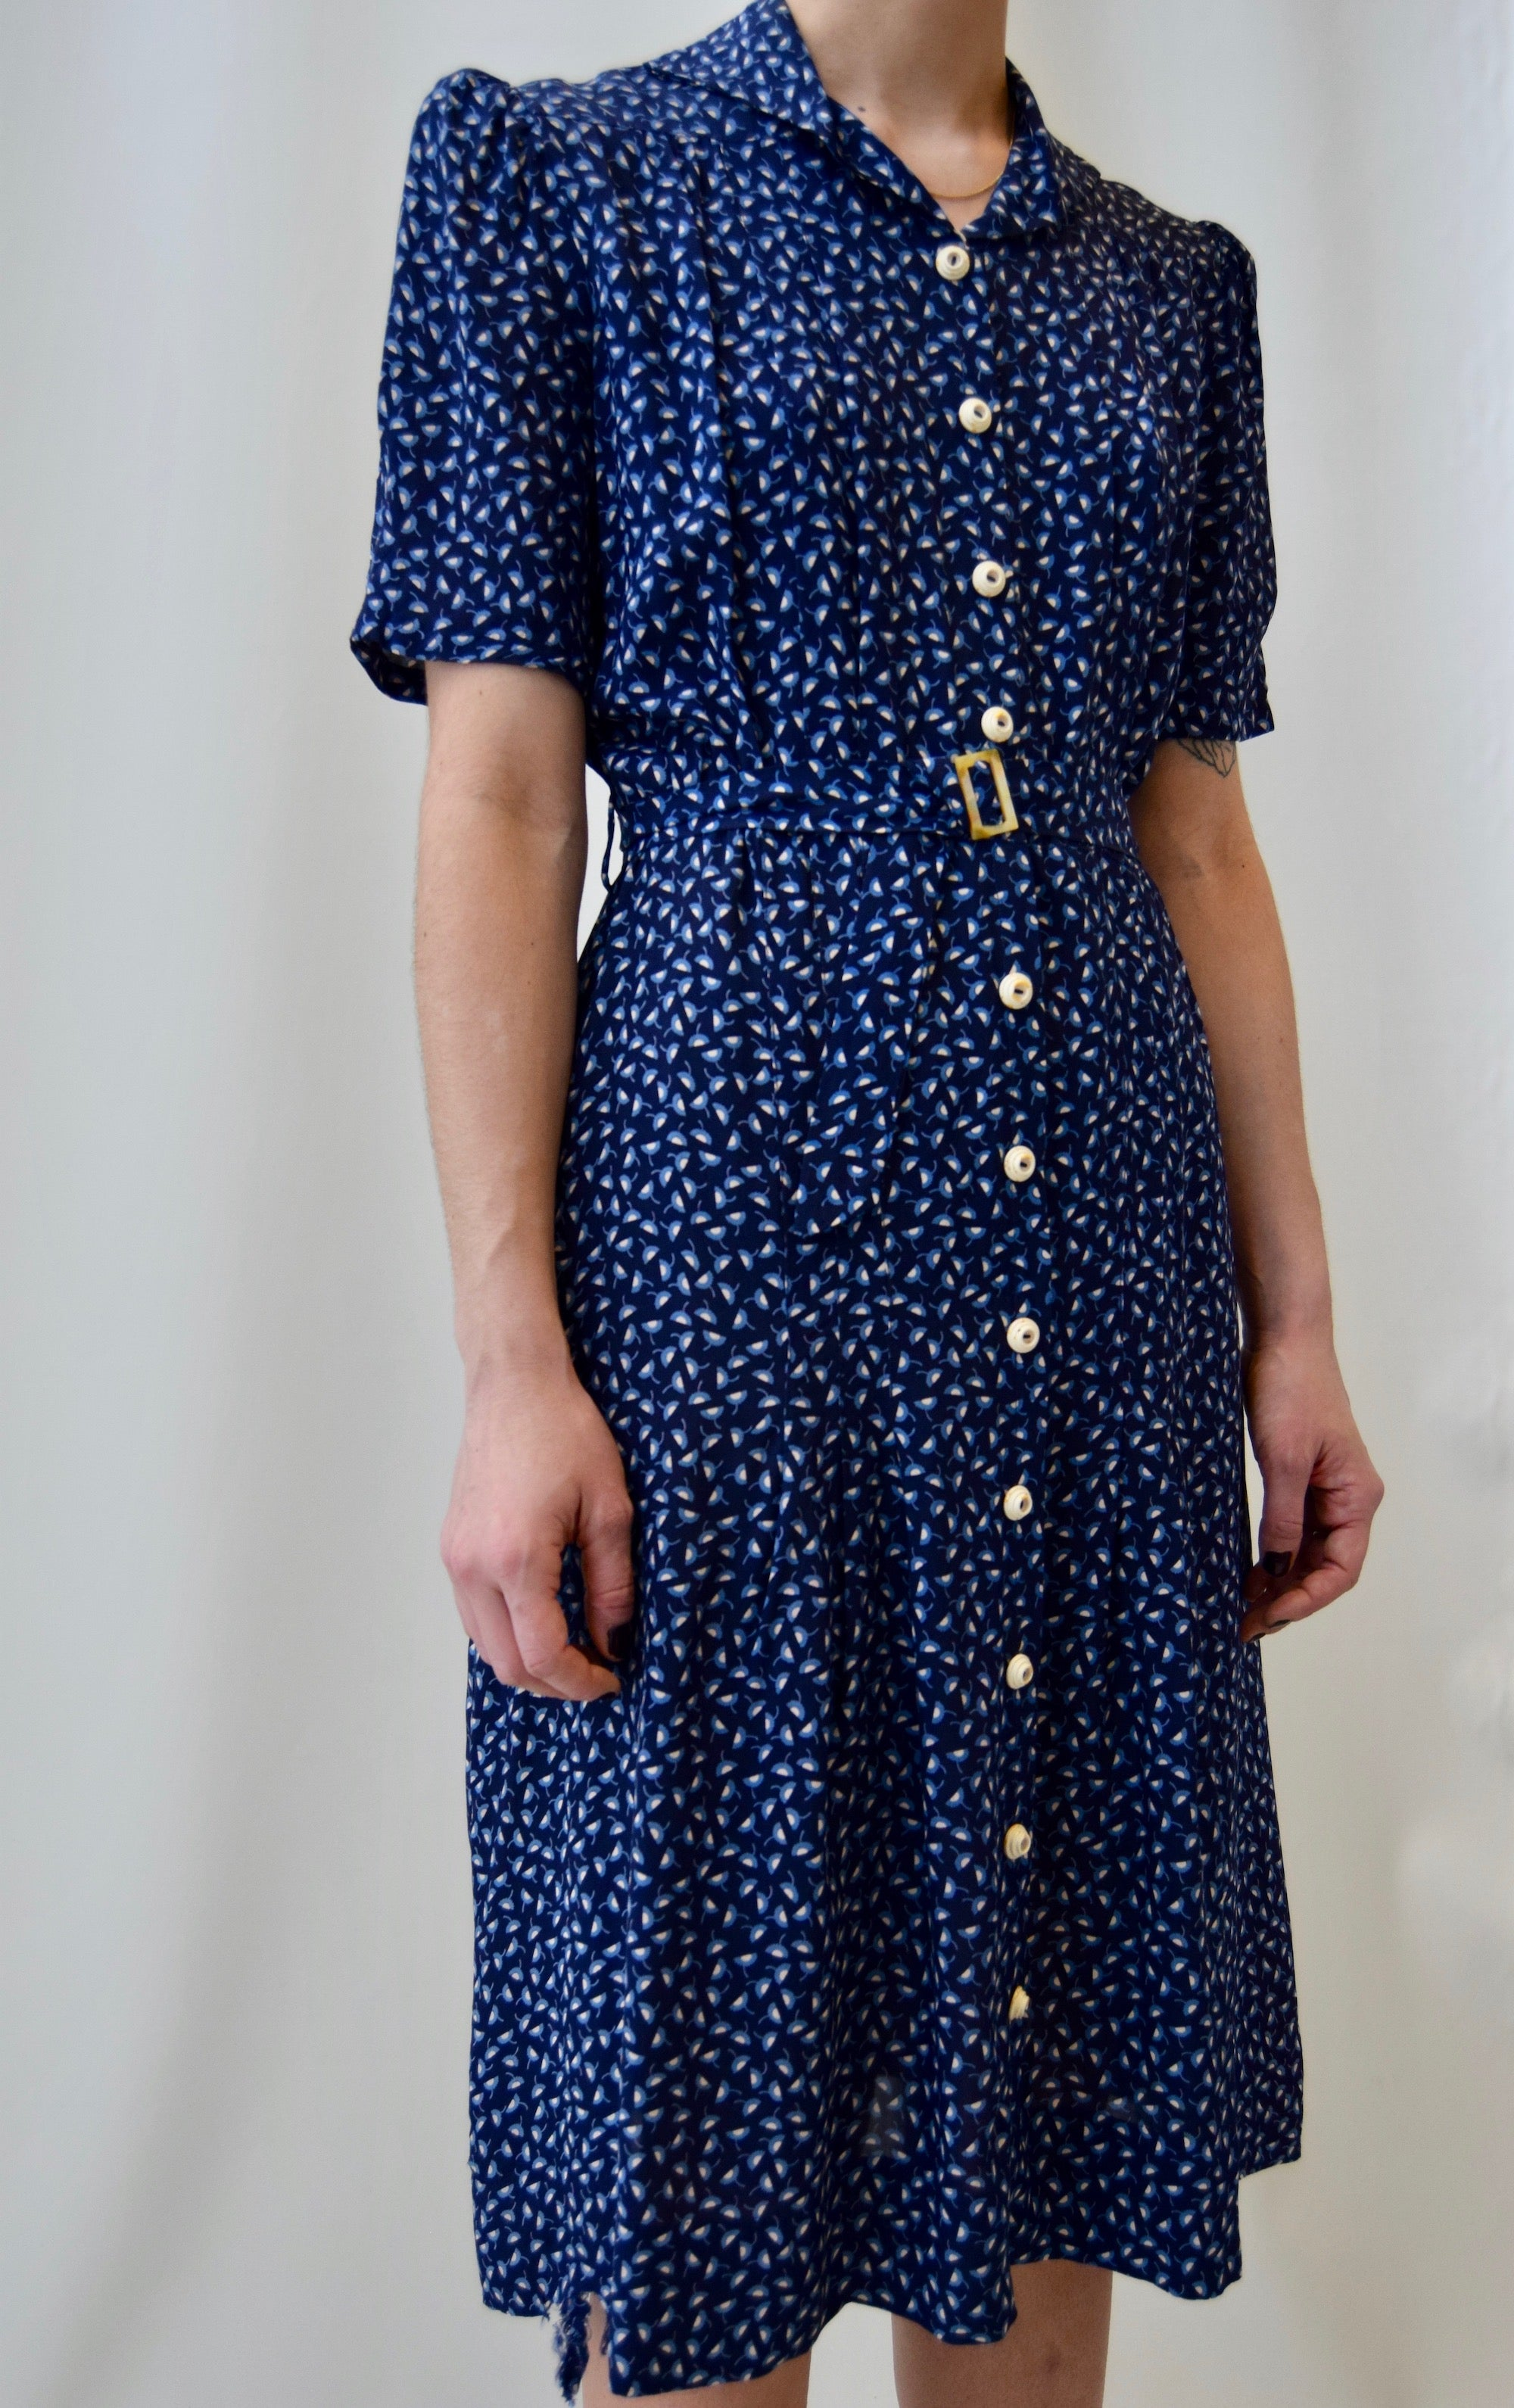 40s Cold Rayon Blue Tones Printed Midi Dress